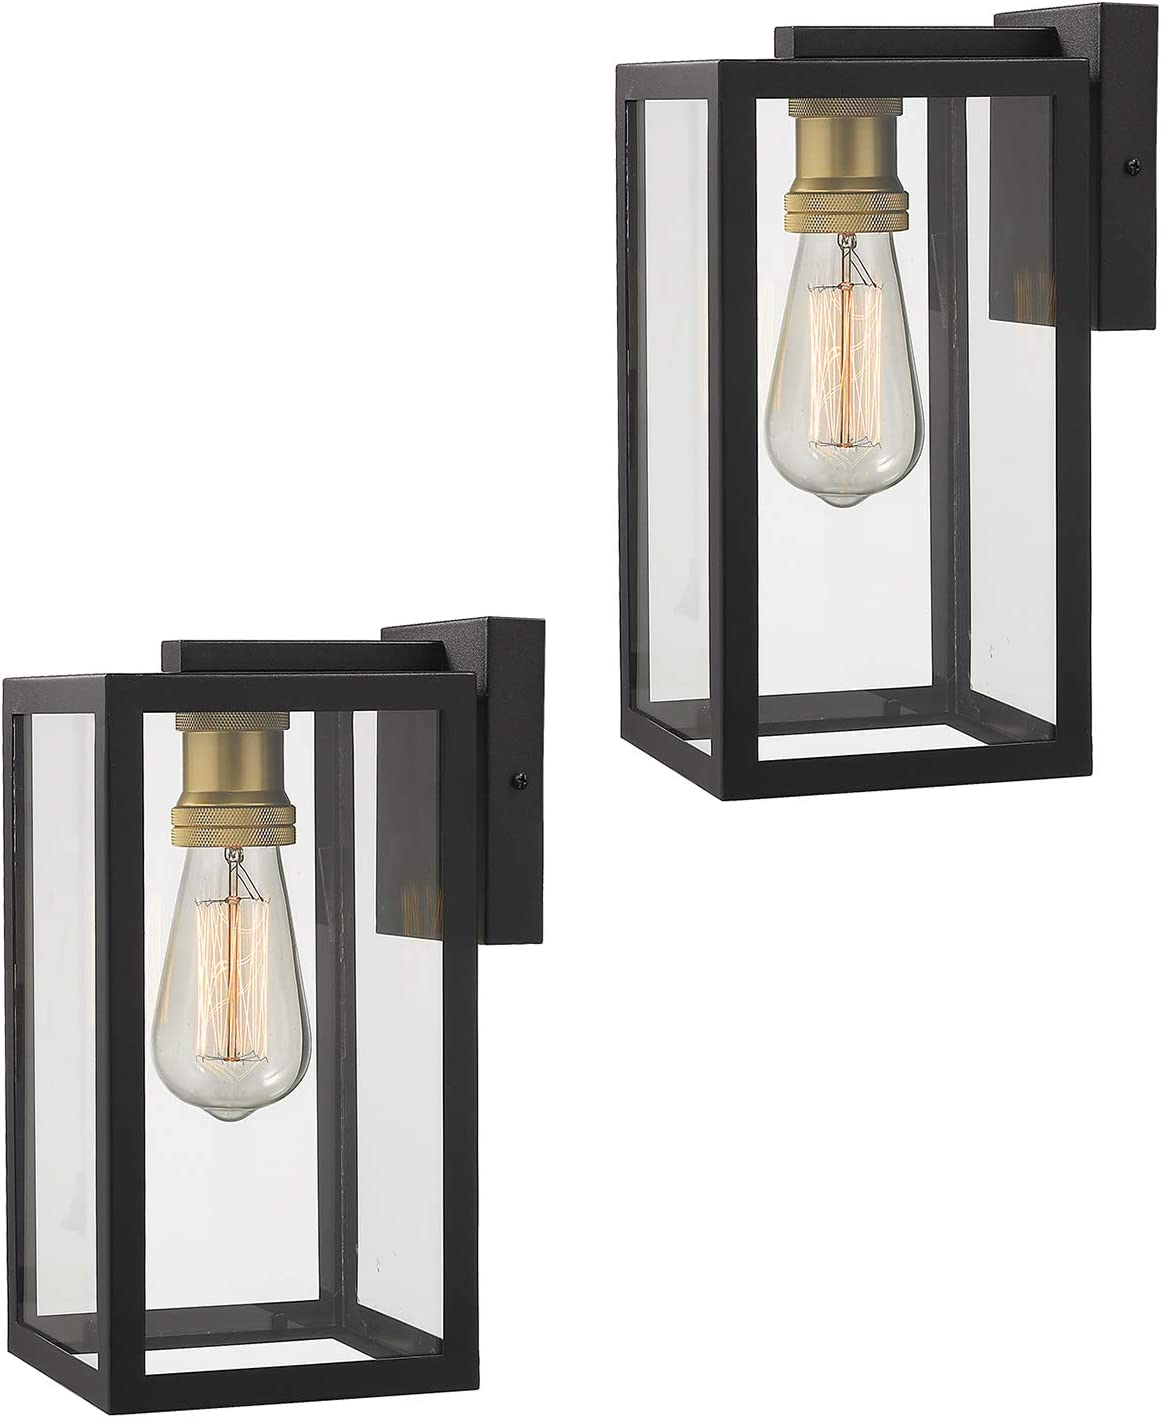 20065B1-2PK Black Finish with Clear Glass Emliviar Outdoor Porch Lights 2 Pack Wall Mount Light Fixtures